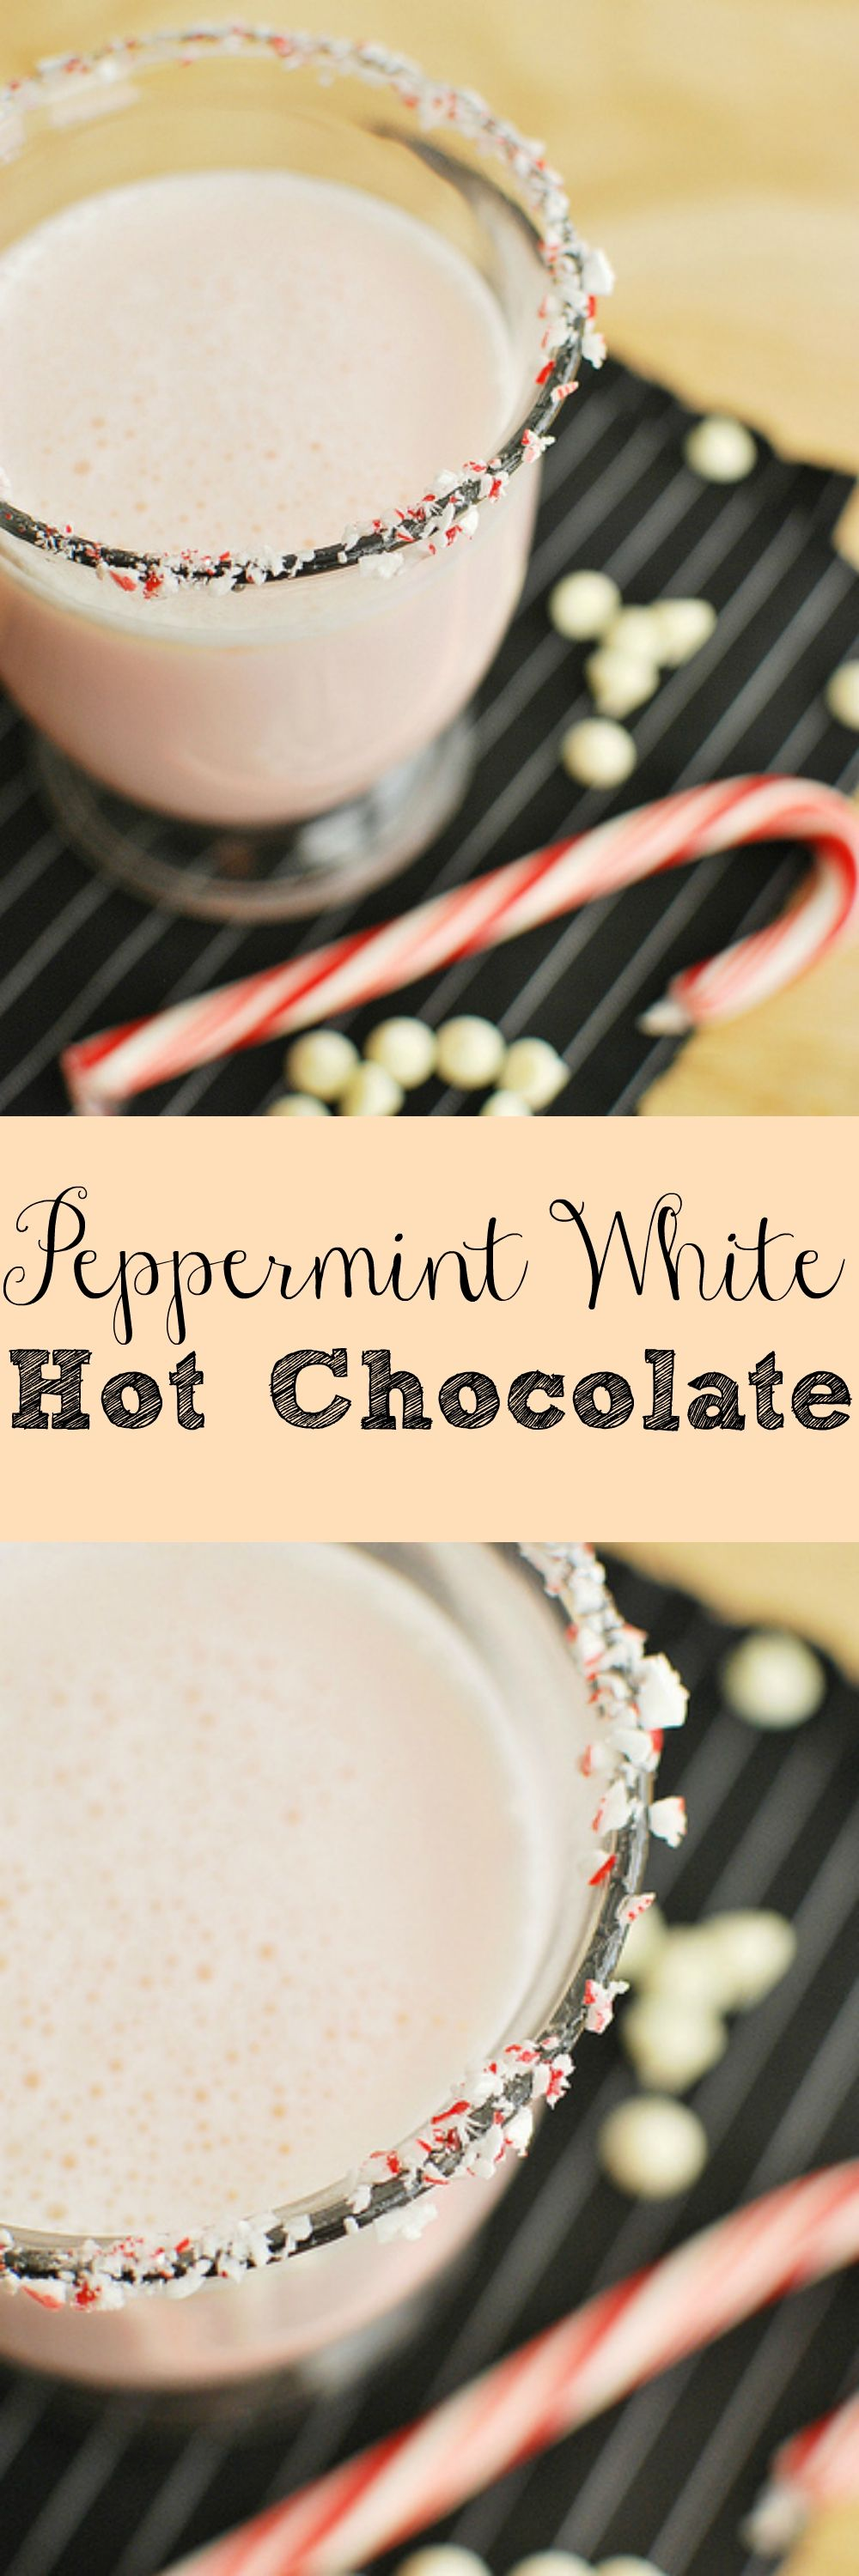 Peppermint White Hot Chocolate - yummy white hot chocolate with peppermint! Use crushed peppermints to decorate the glass!